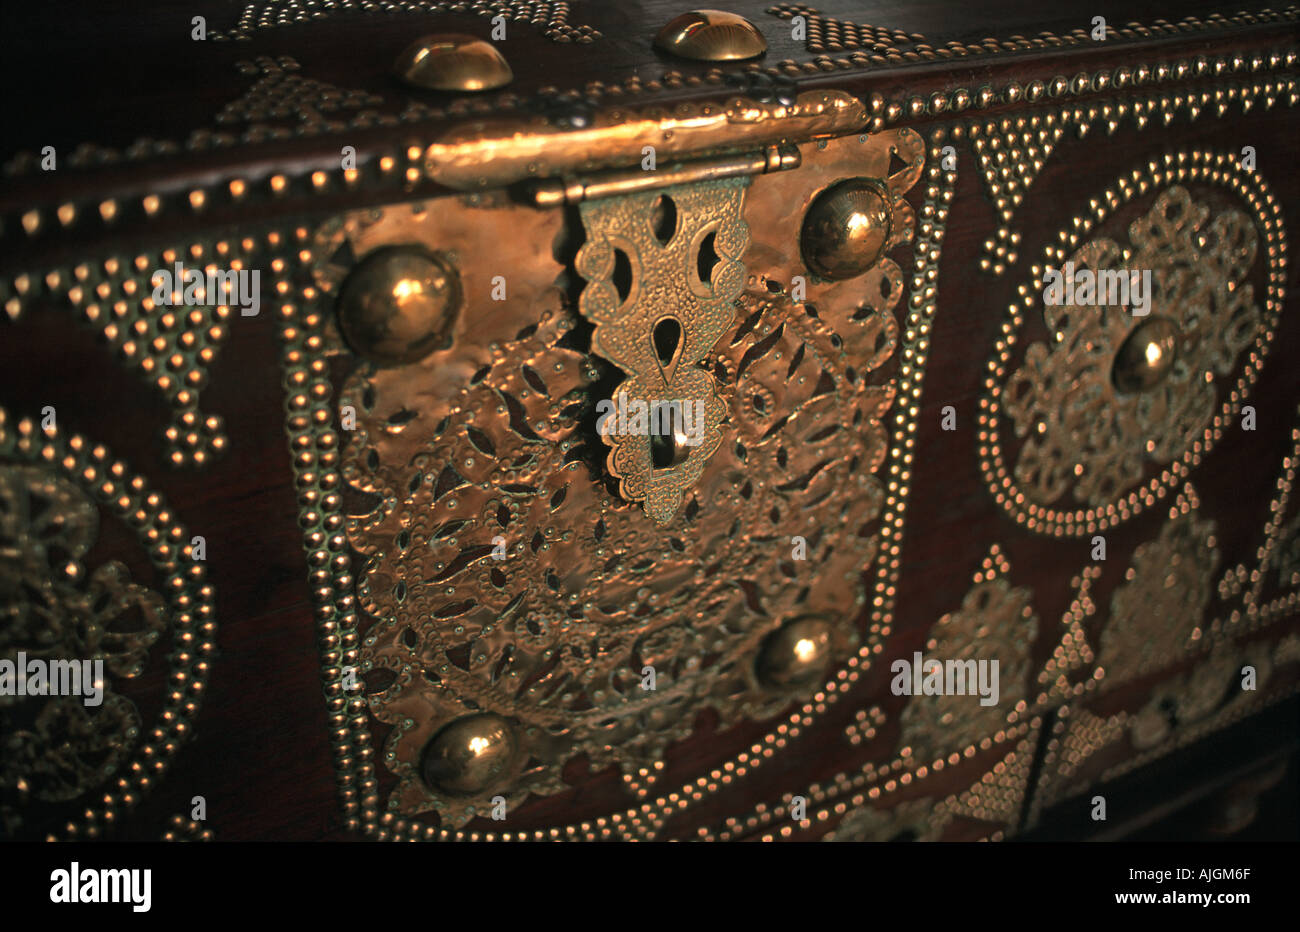 Ornate chest with brass filigree decoration Arab decor can be found in all the opulent hotels in Stone Town Zanzibar Tanzania - Stock Image